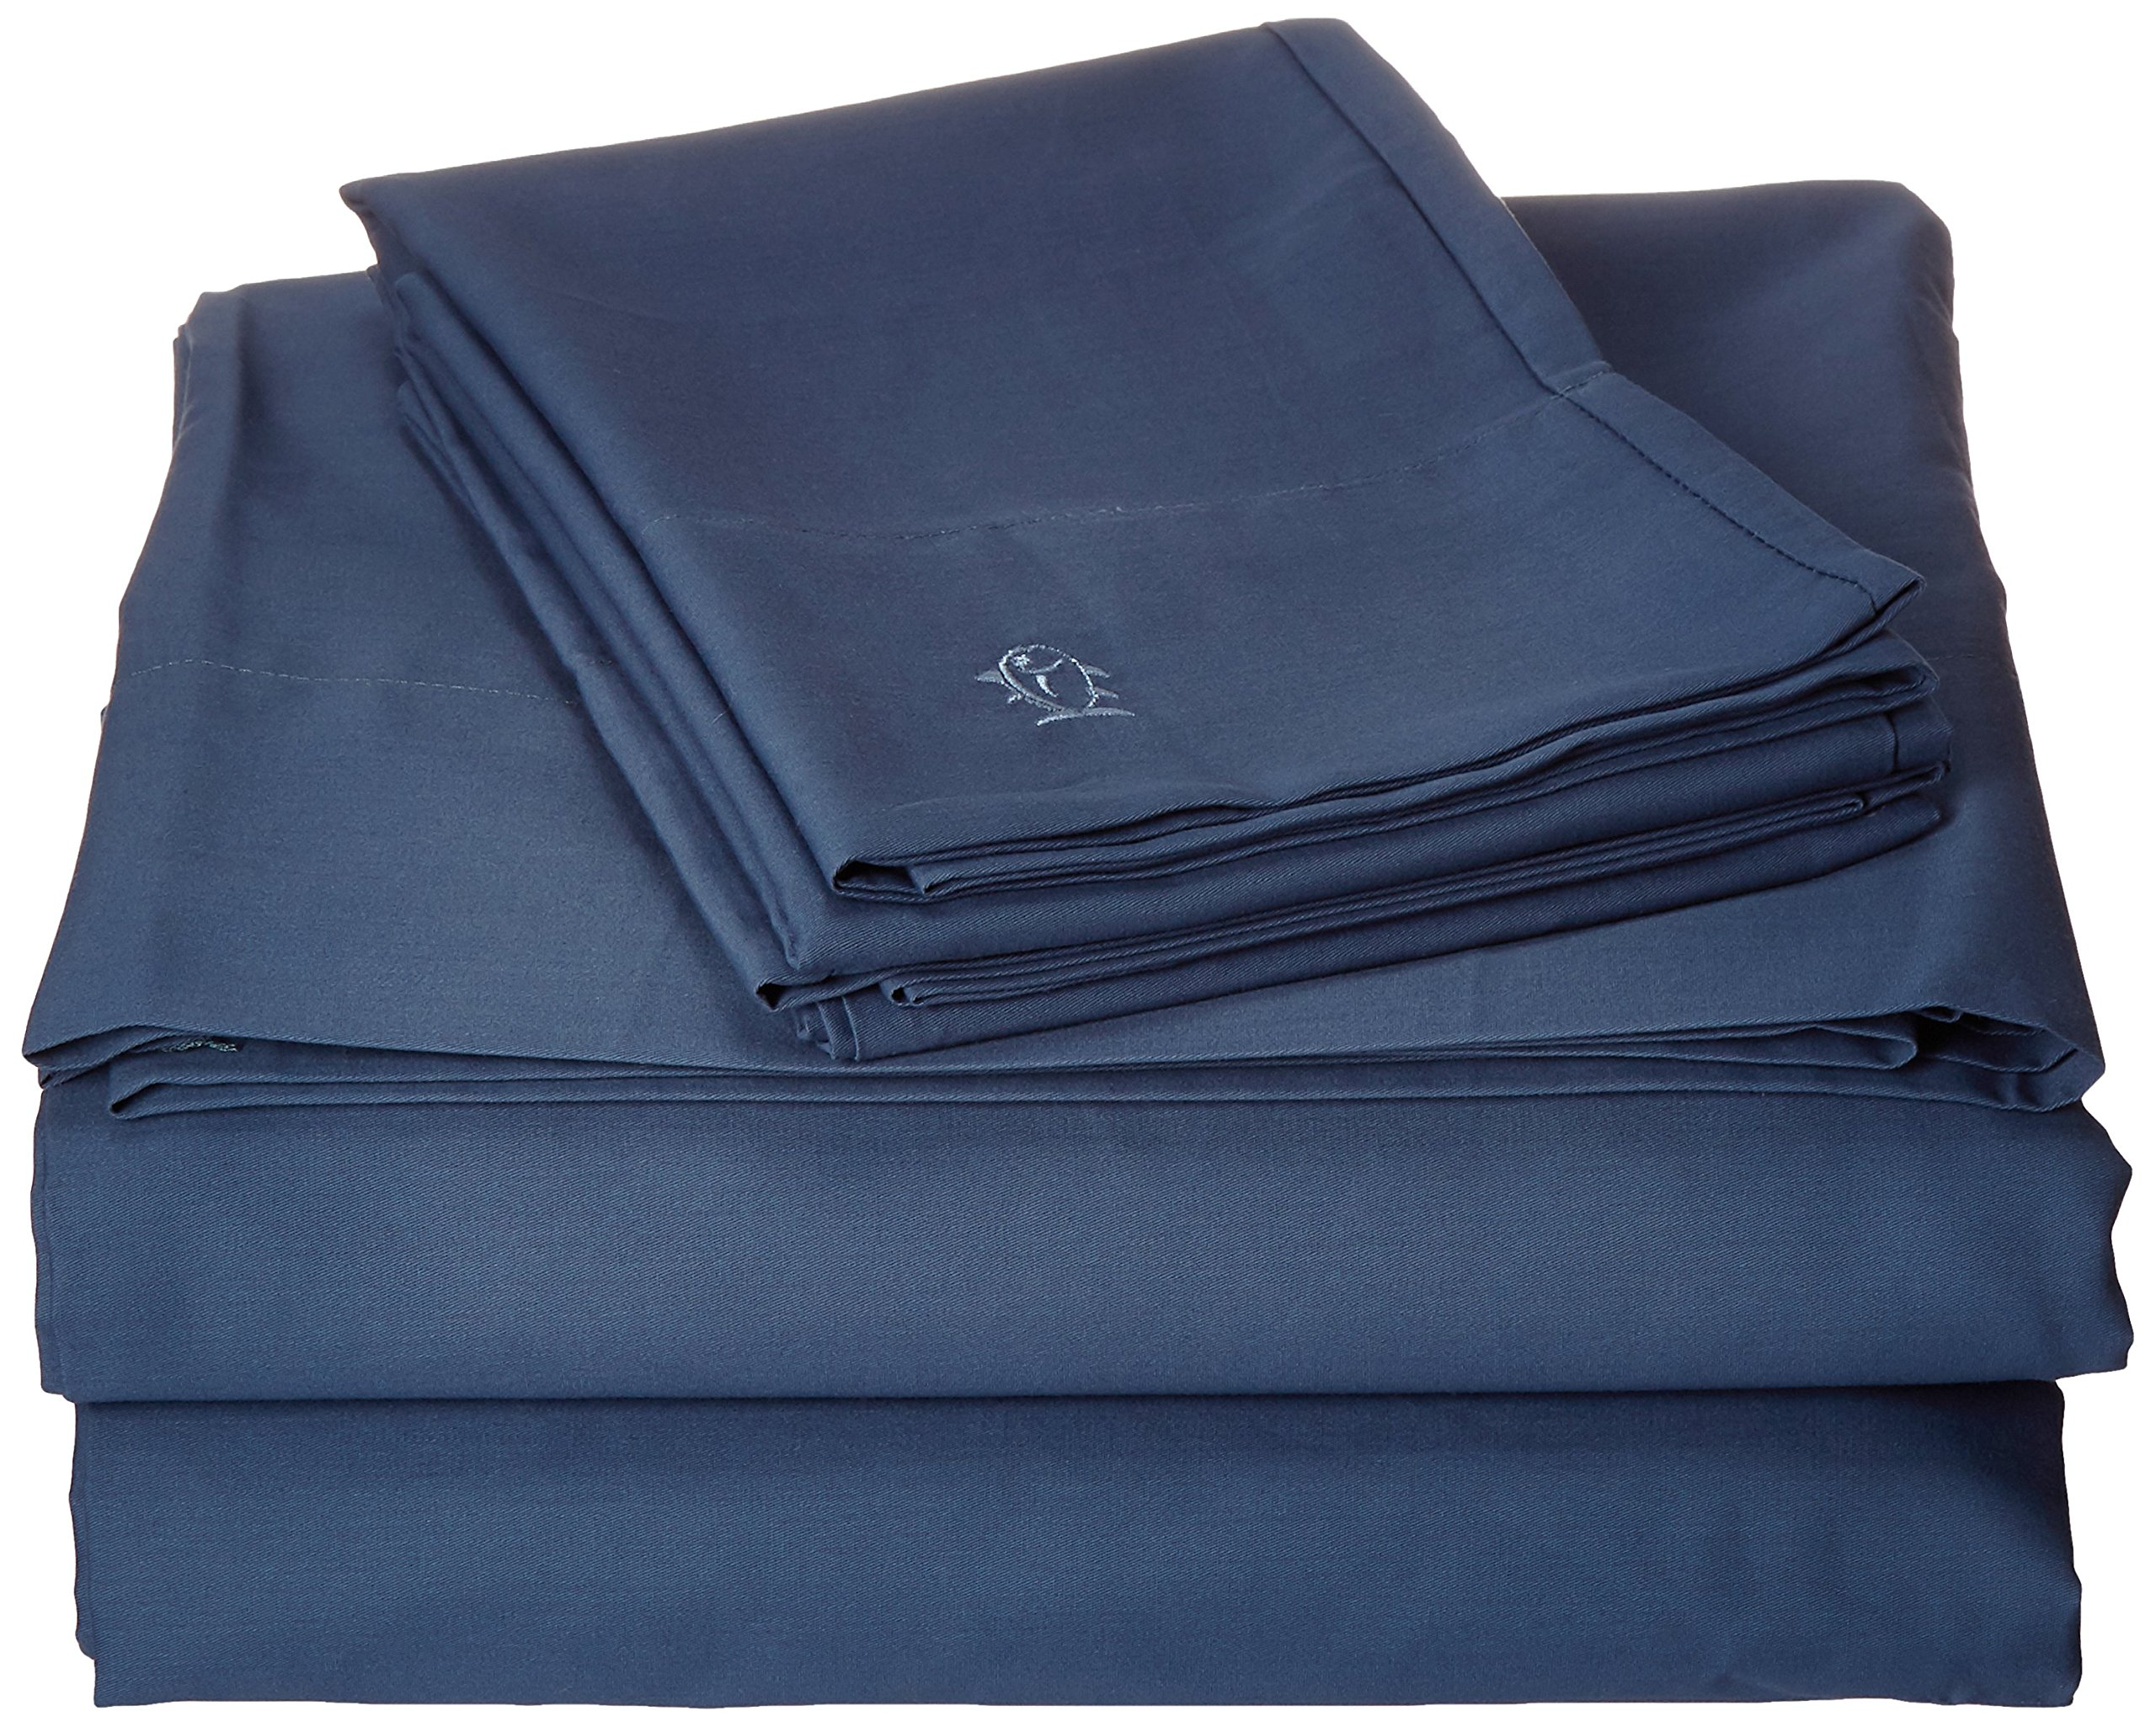 Southern Tide Skipjack Tonal Embroidered Twill Sheet Set, Queen, Nautical Blue